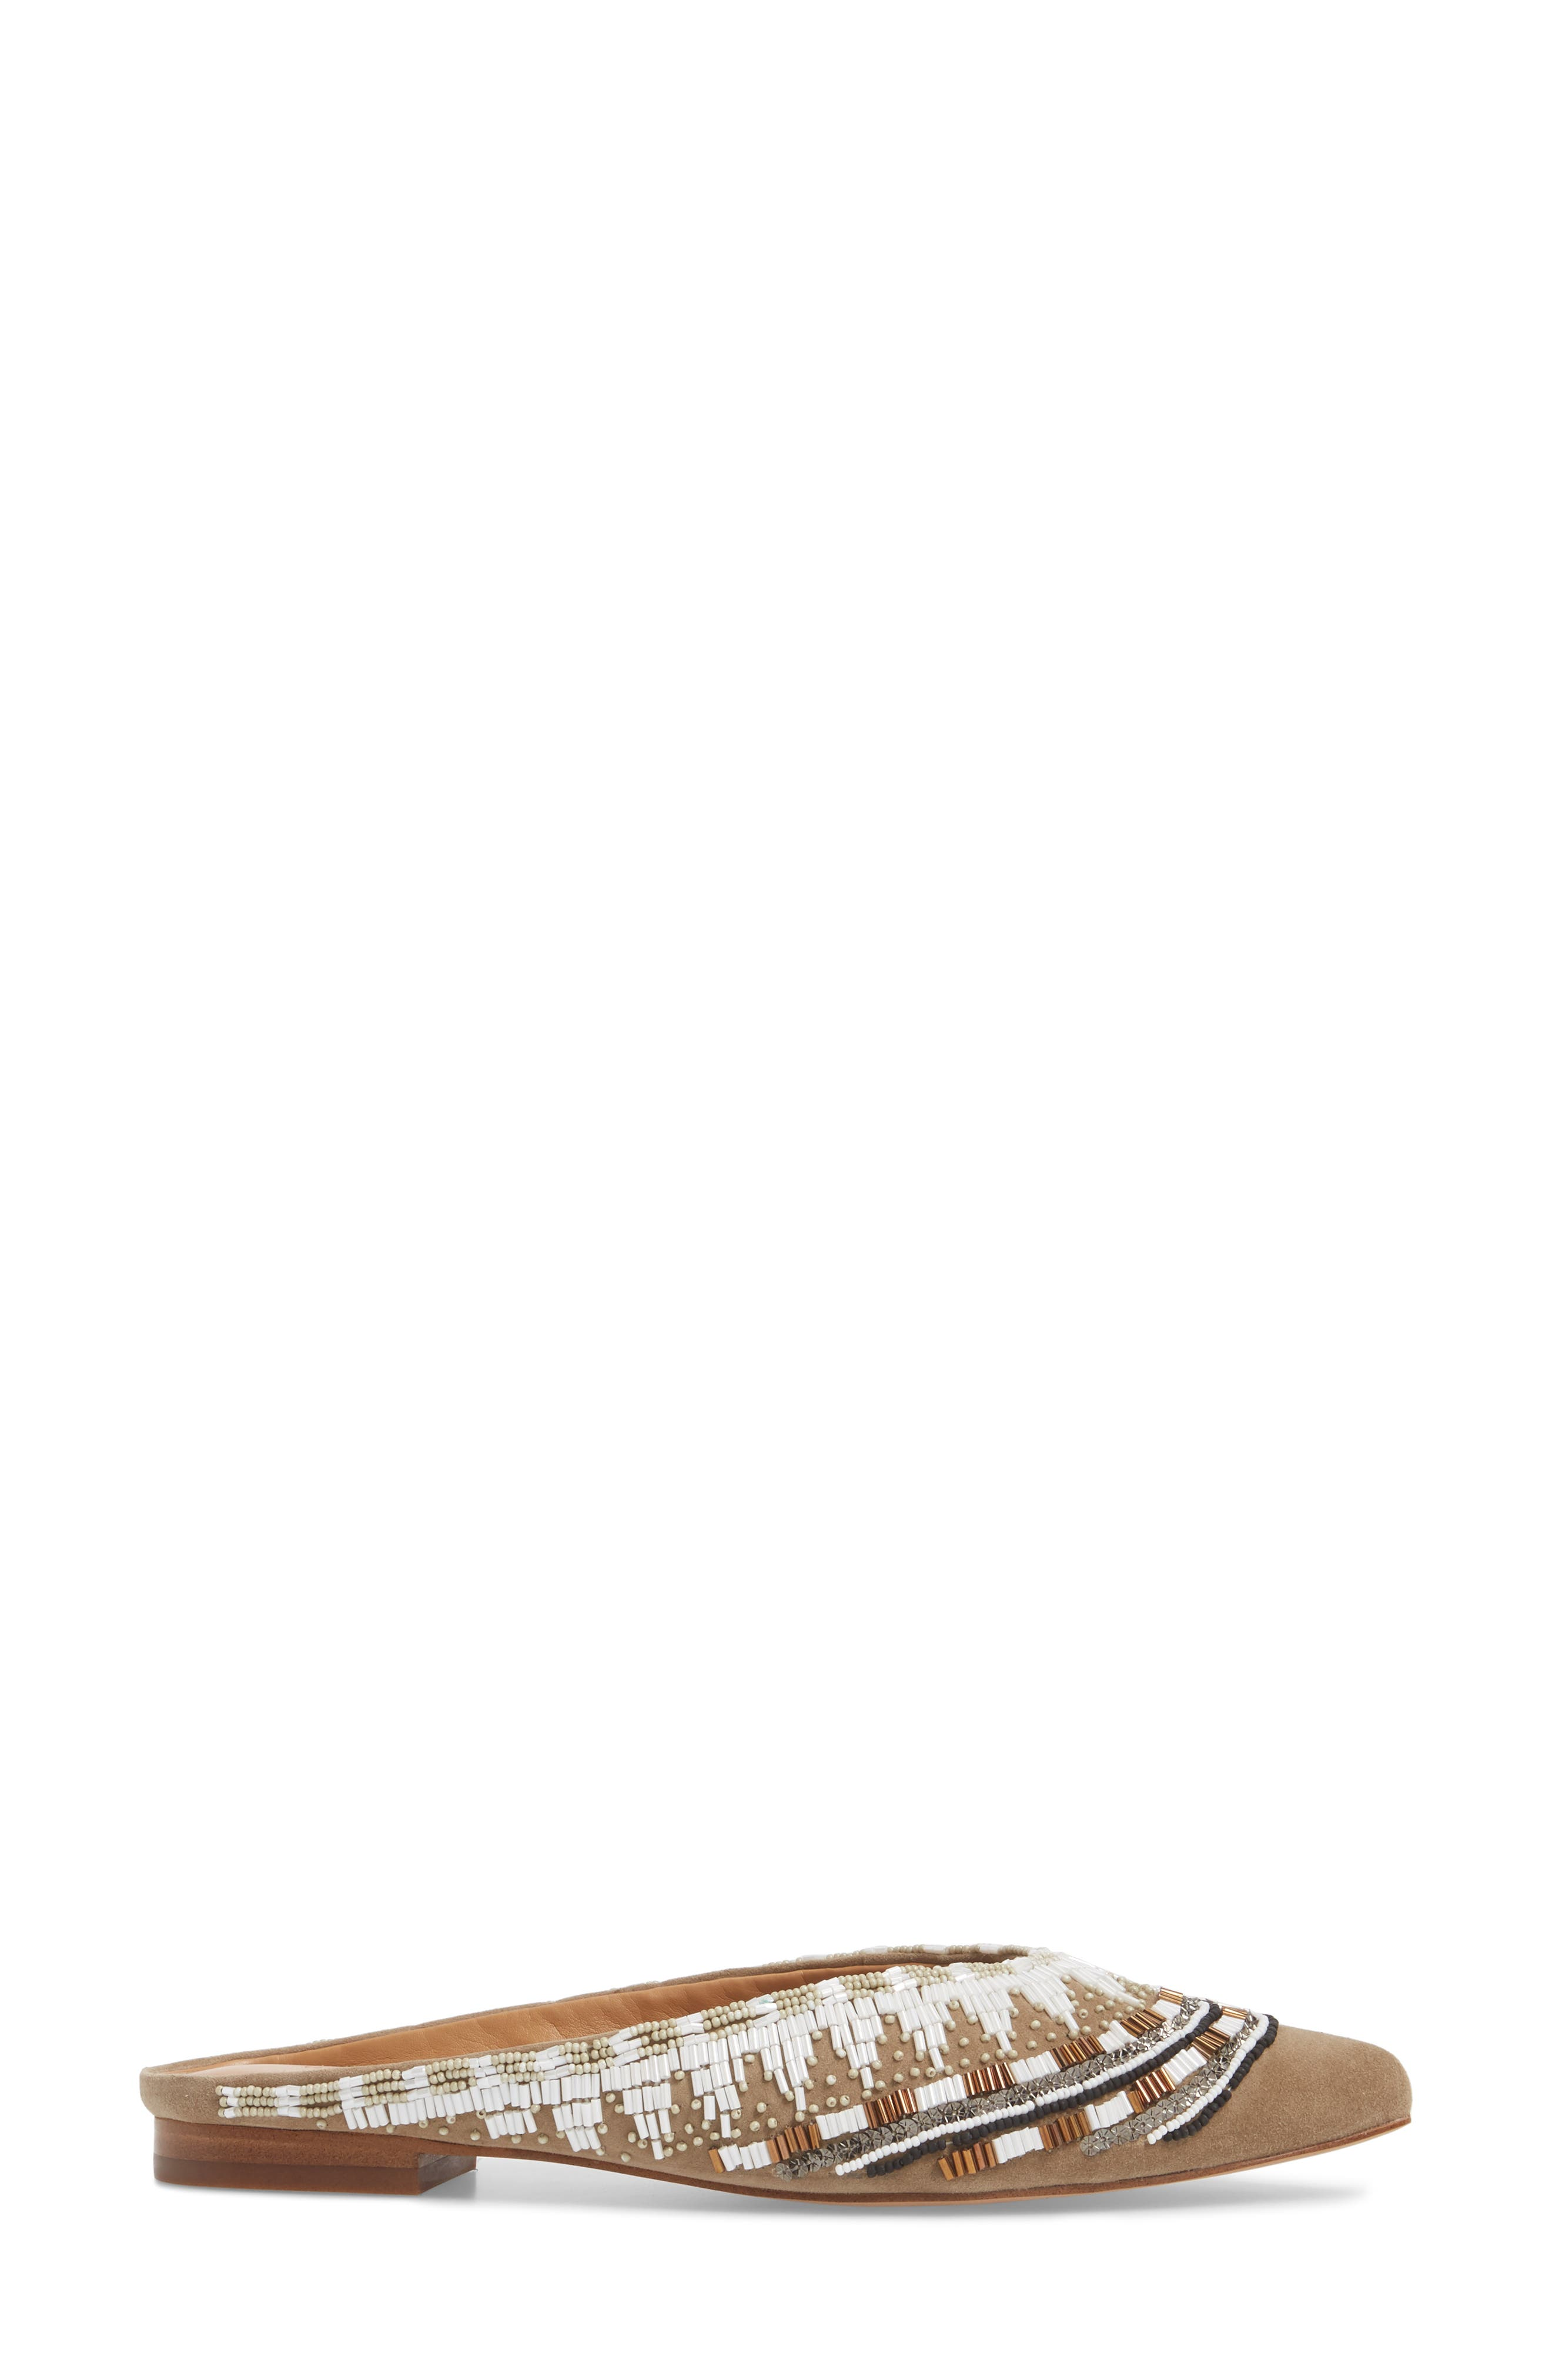 Roxane Beaded Flat Mule,                             Alternate thumbnail 3, color,                             TAUPE SUEDE